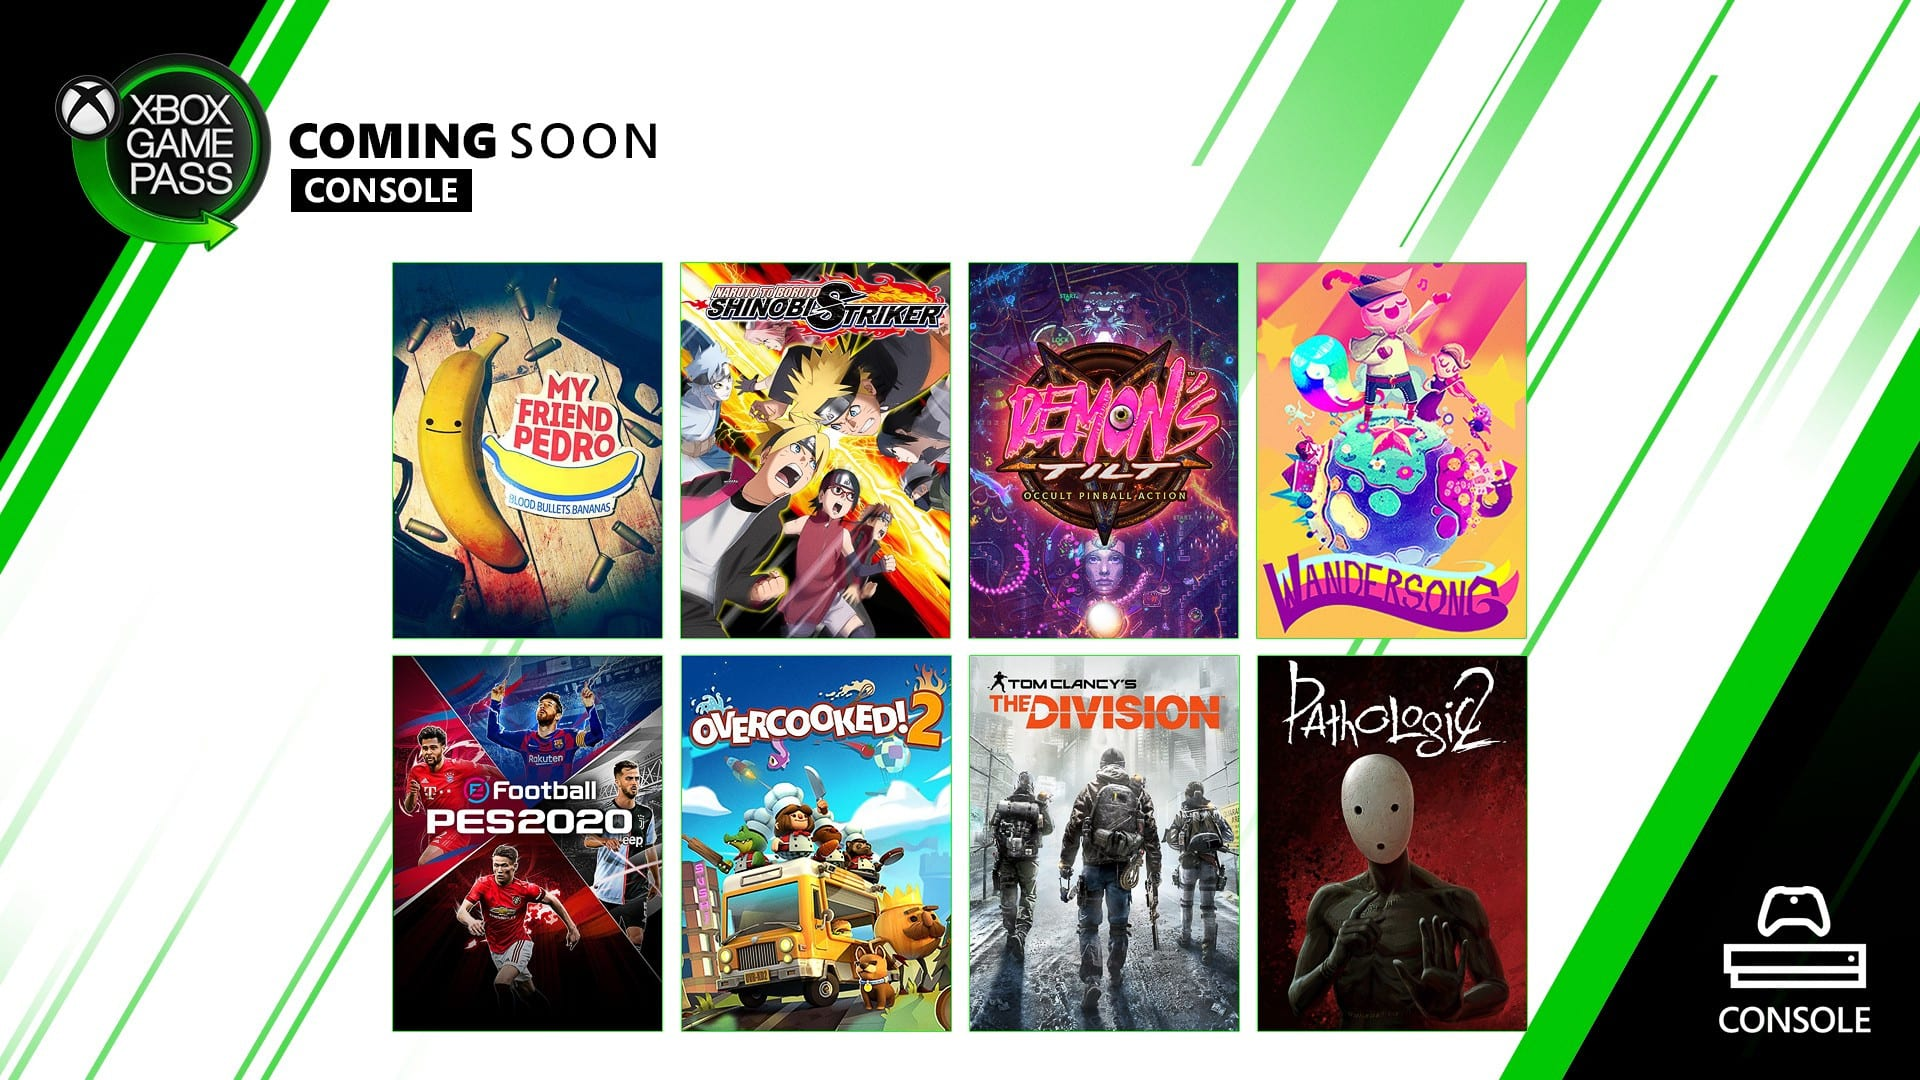 xbox game pass, new games, games leaving game pass